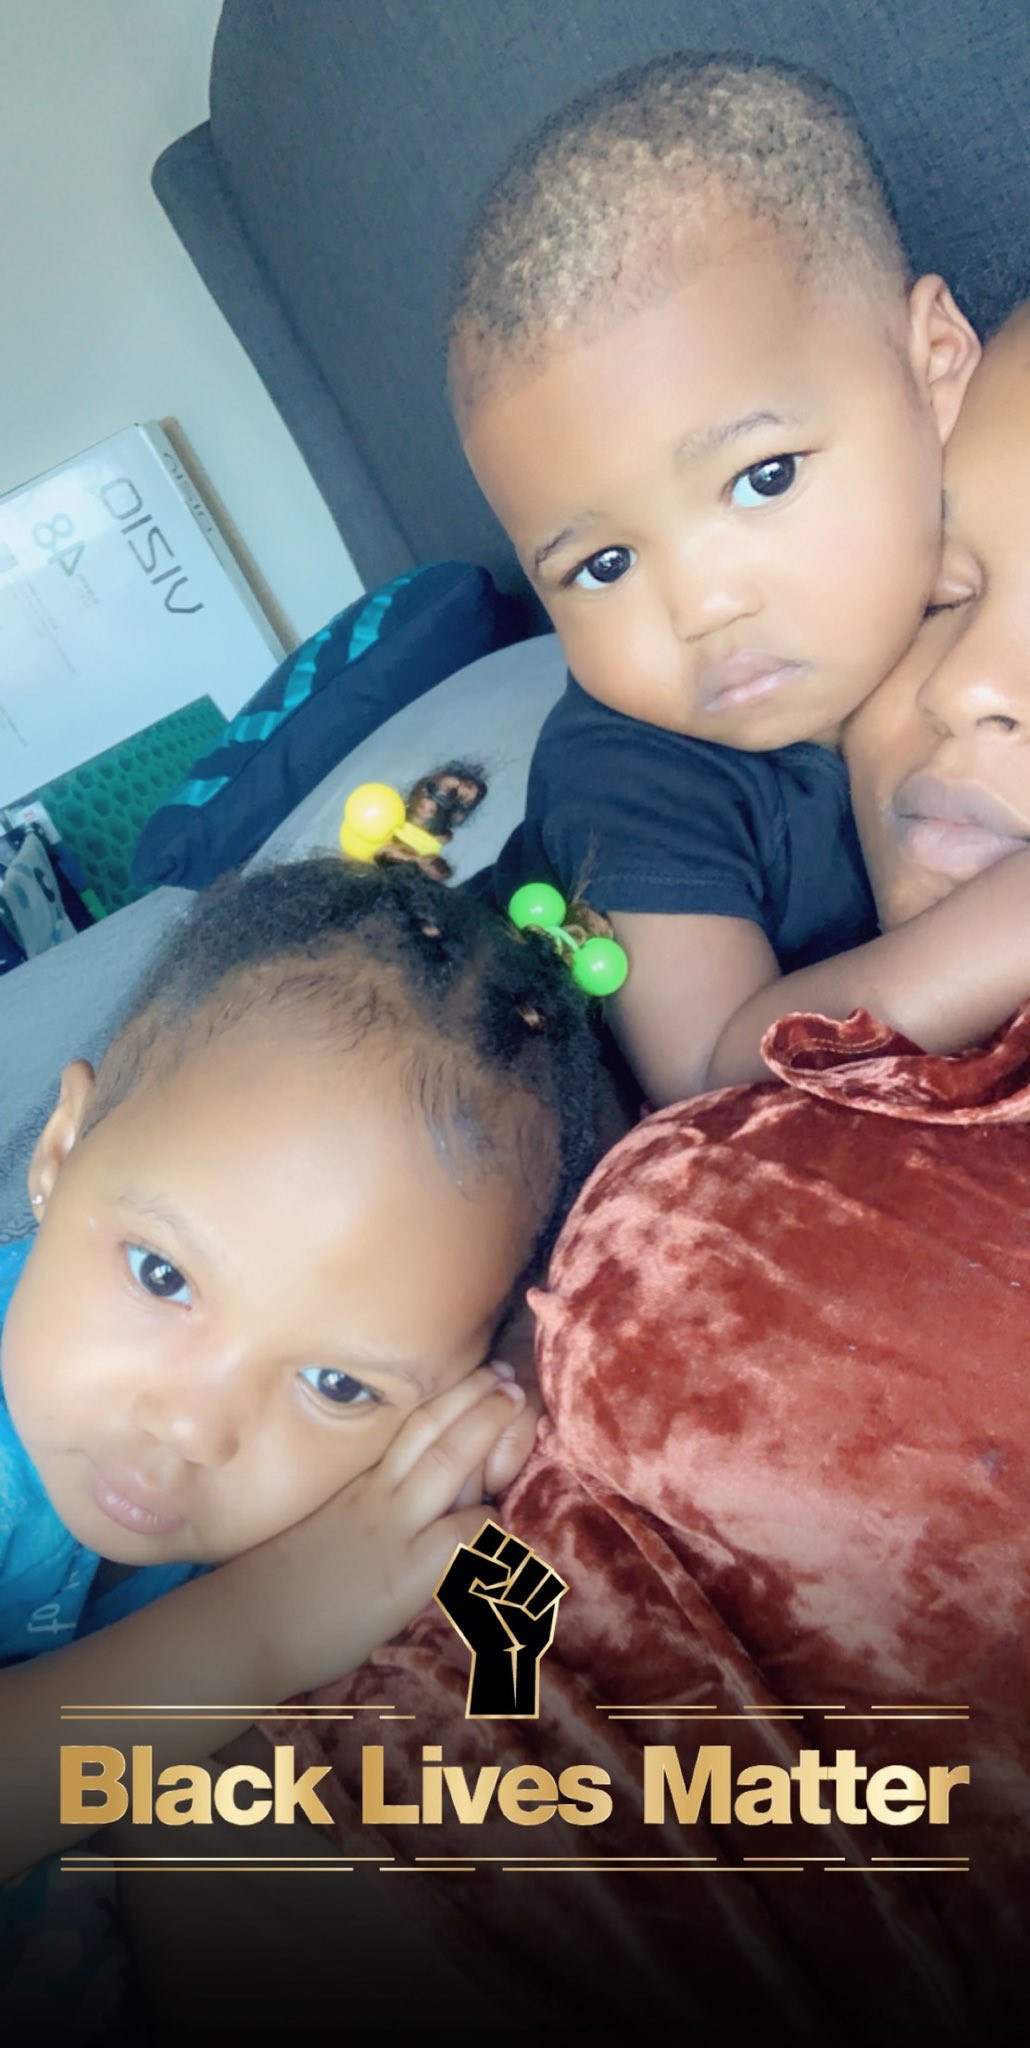 Emma Nyra shares lovely photos of her twin children, Alexander and Alexandria